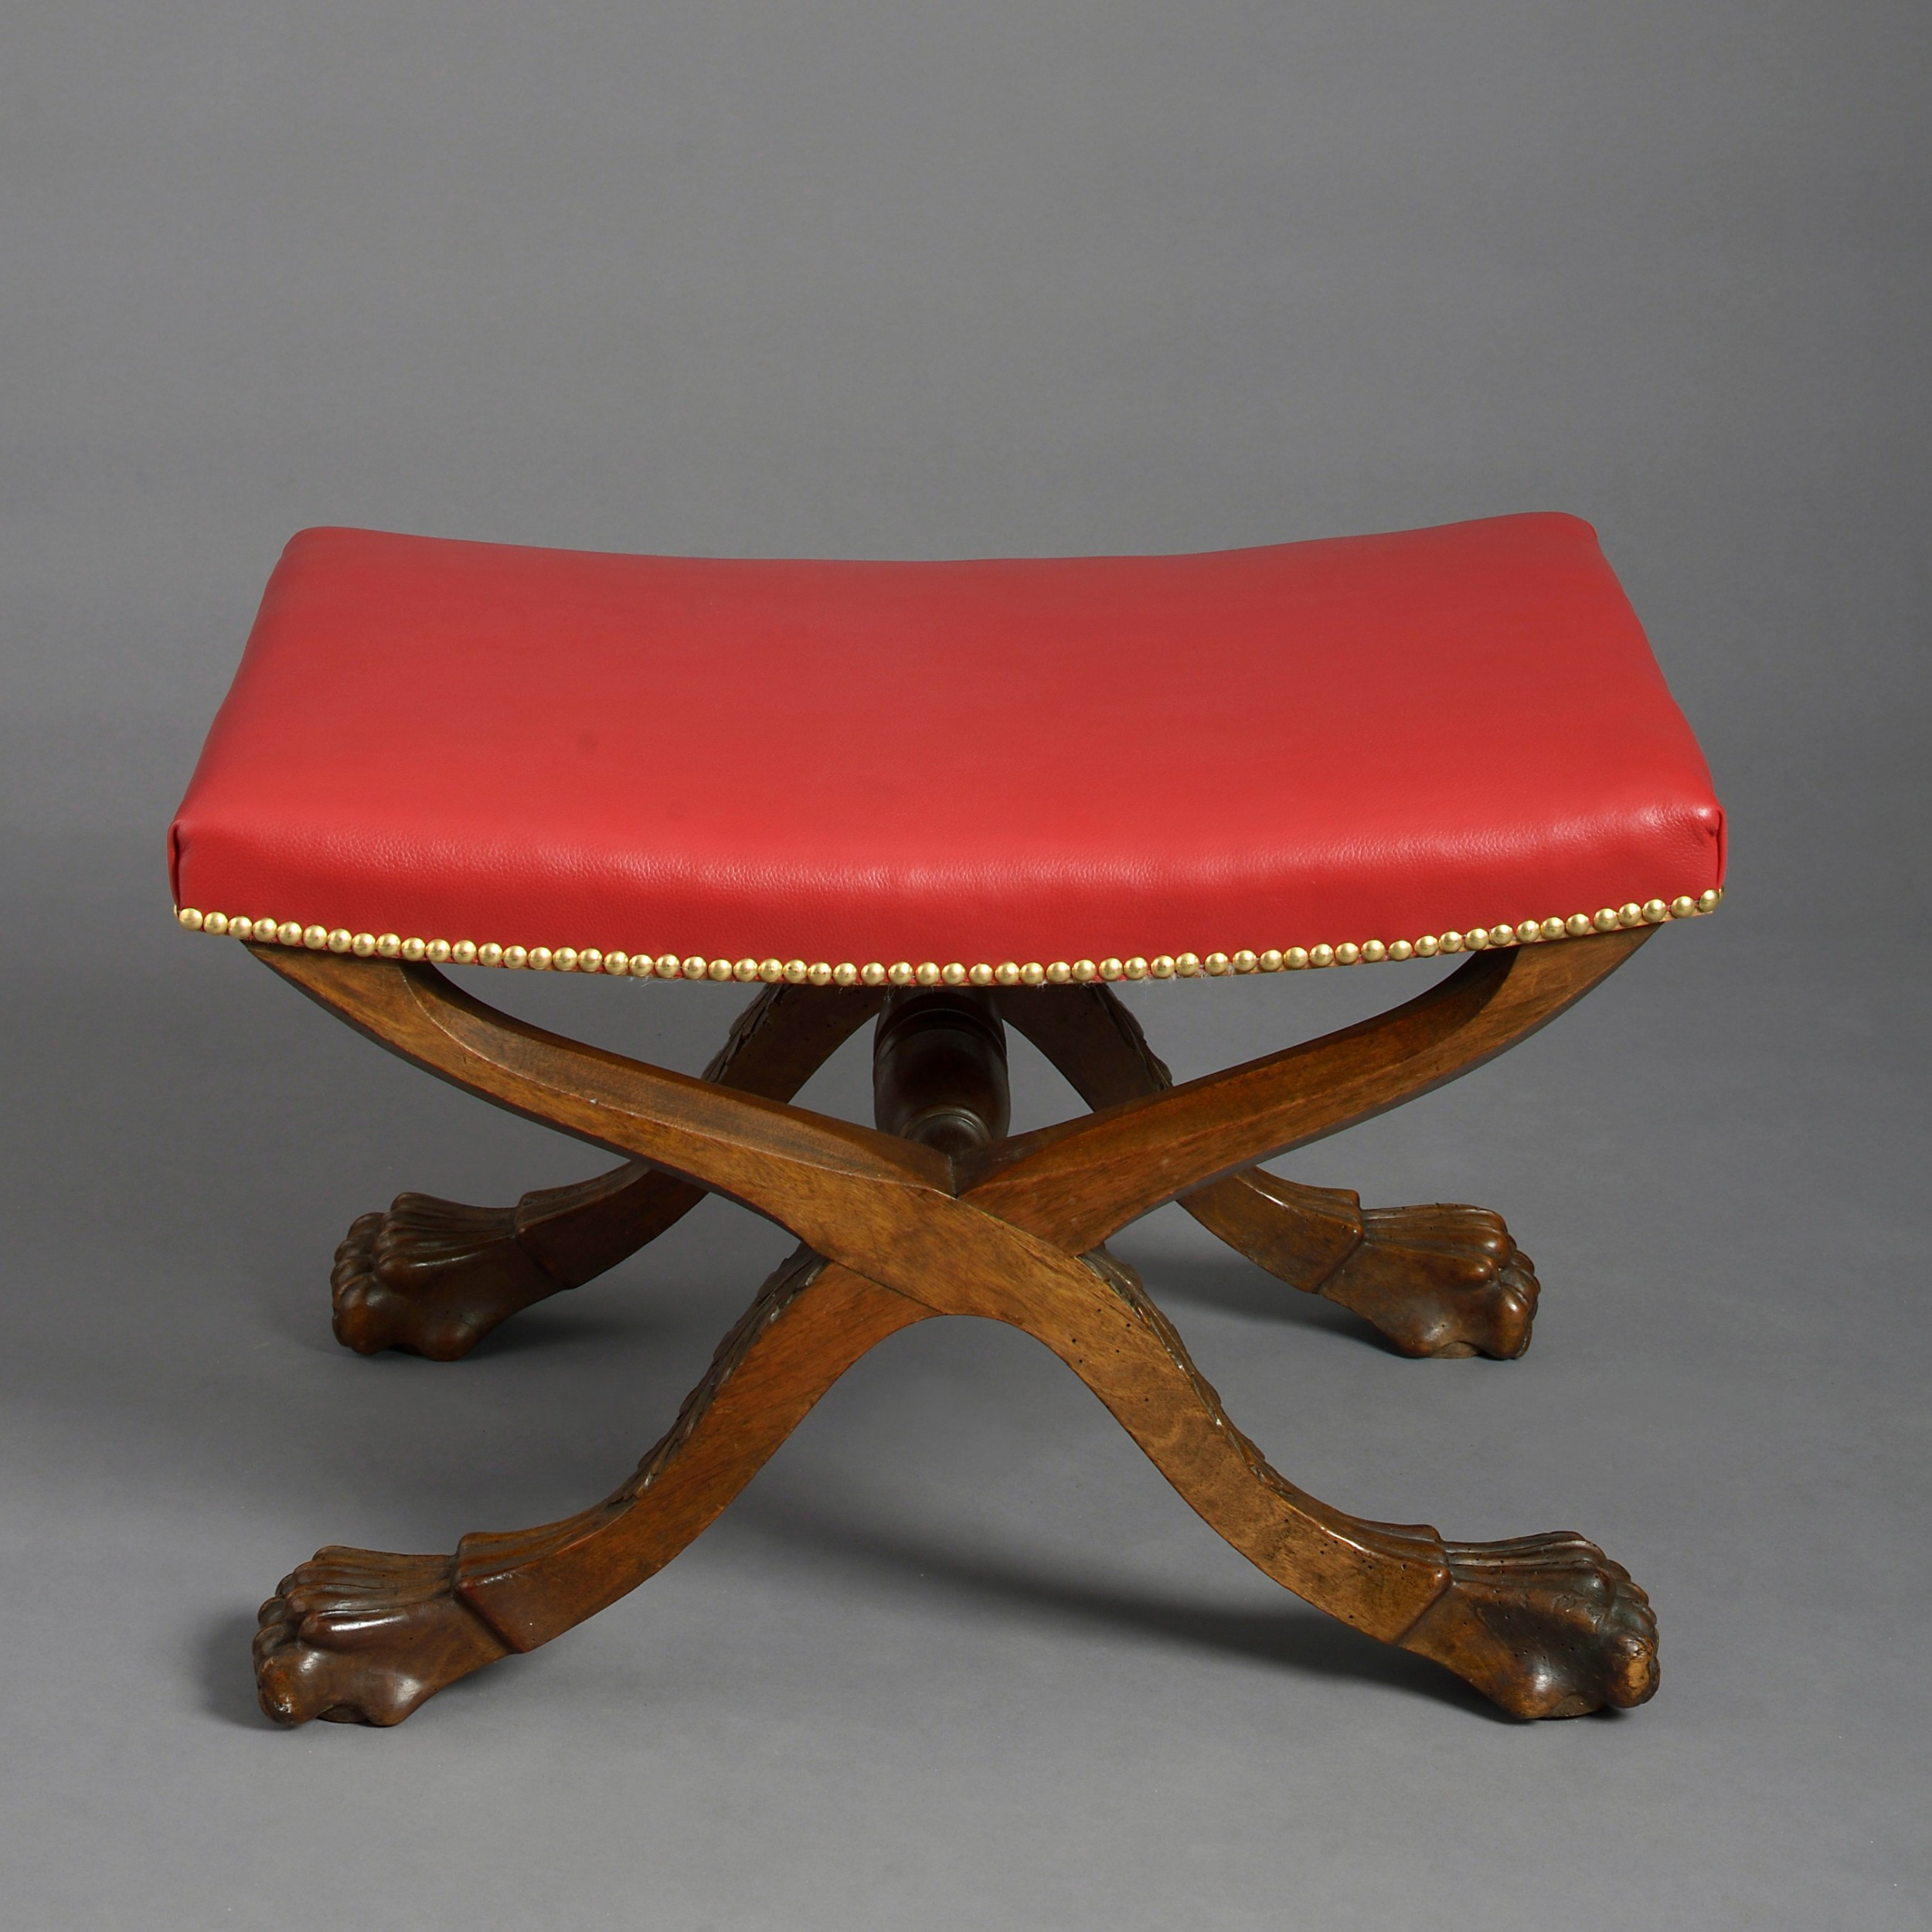 19th century carved walnut xframe stool with red leather seat